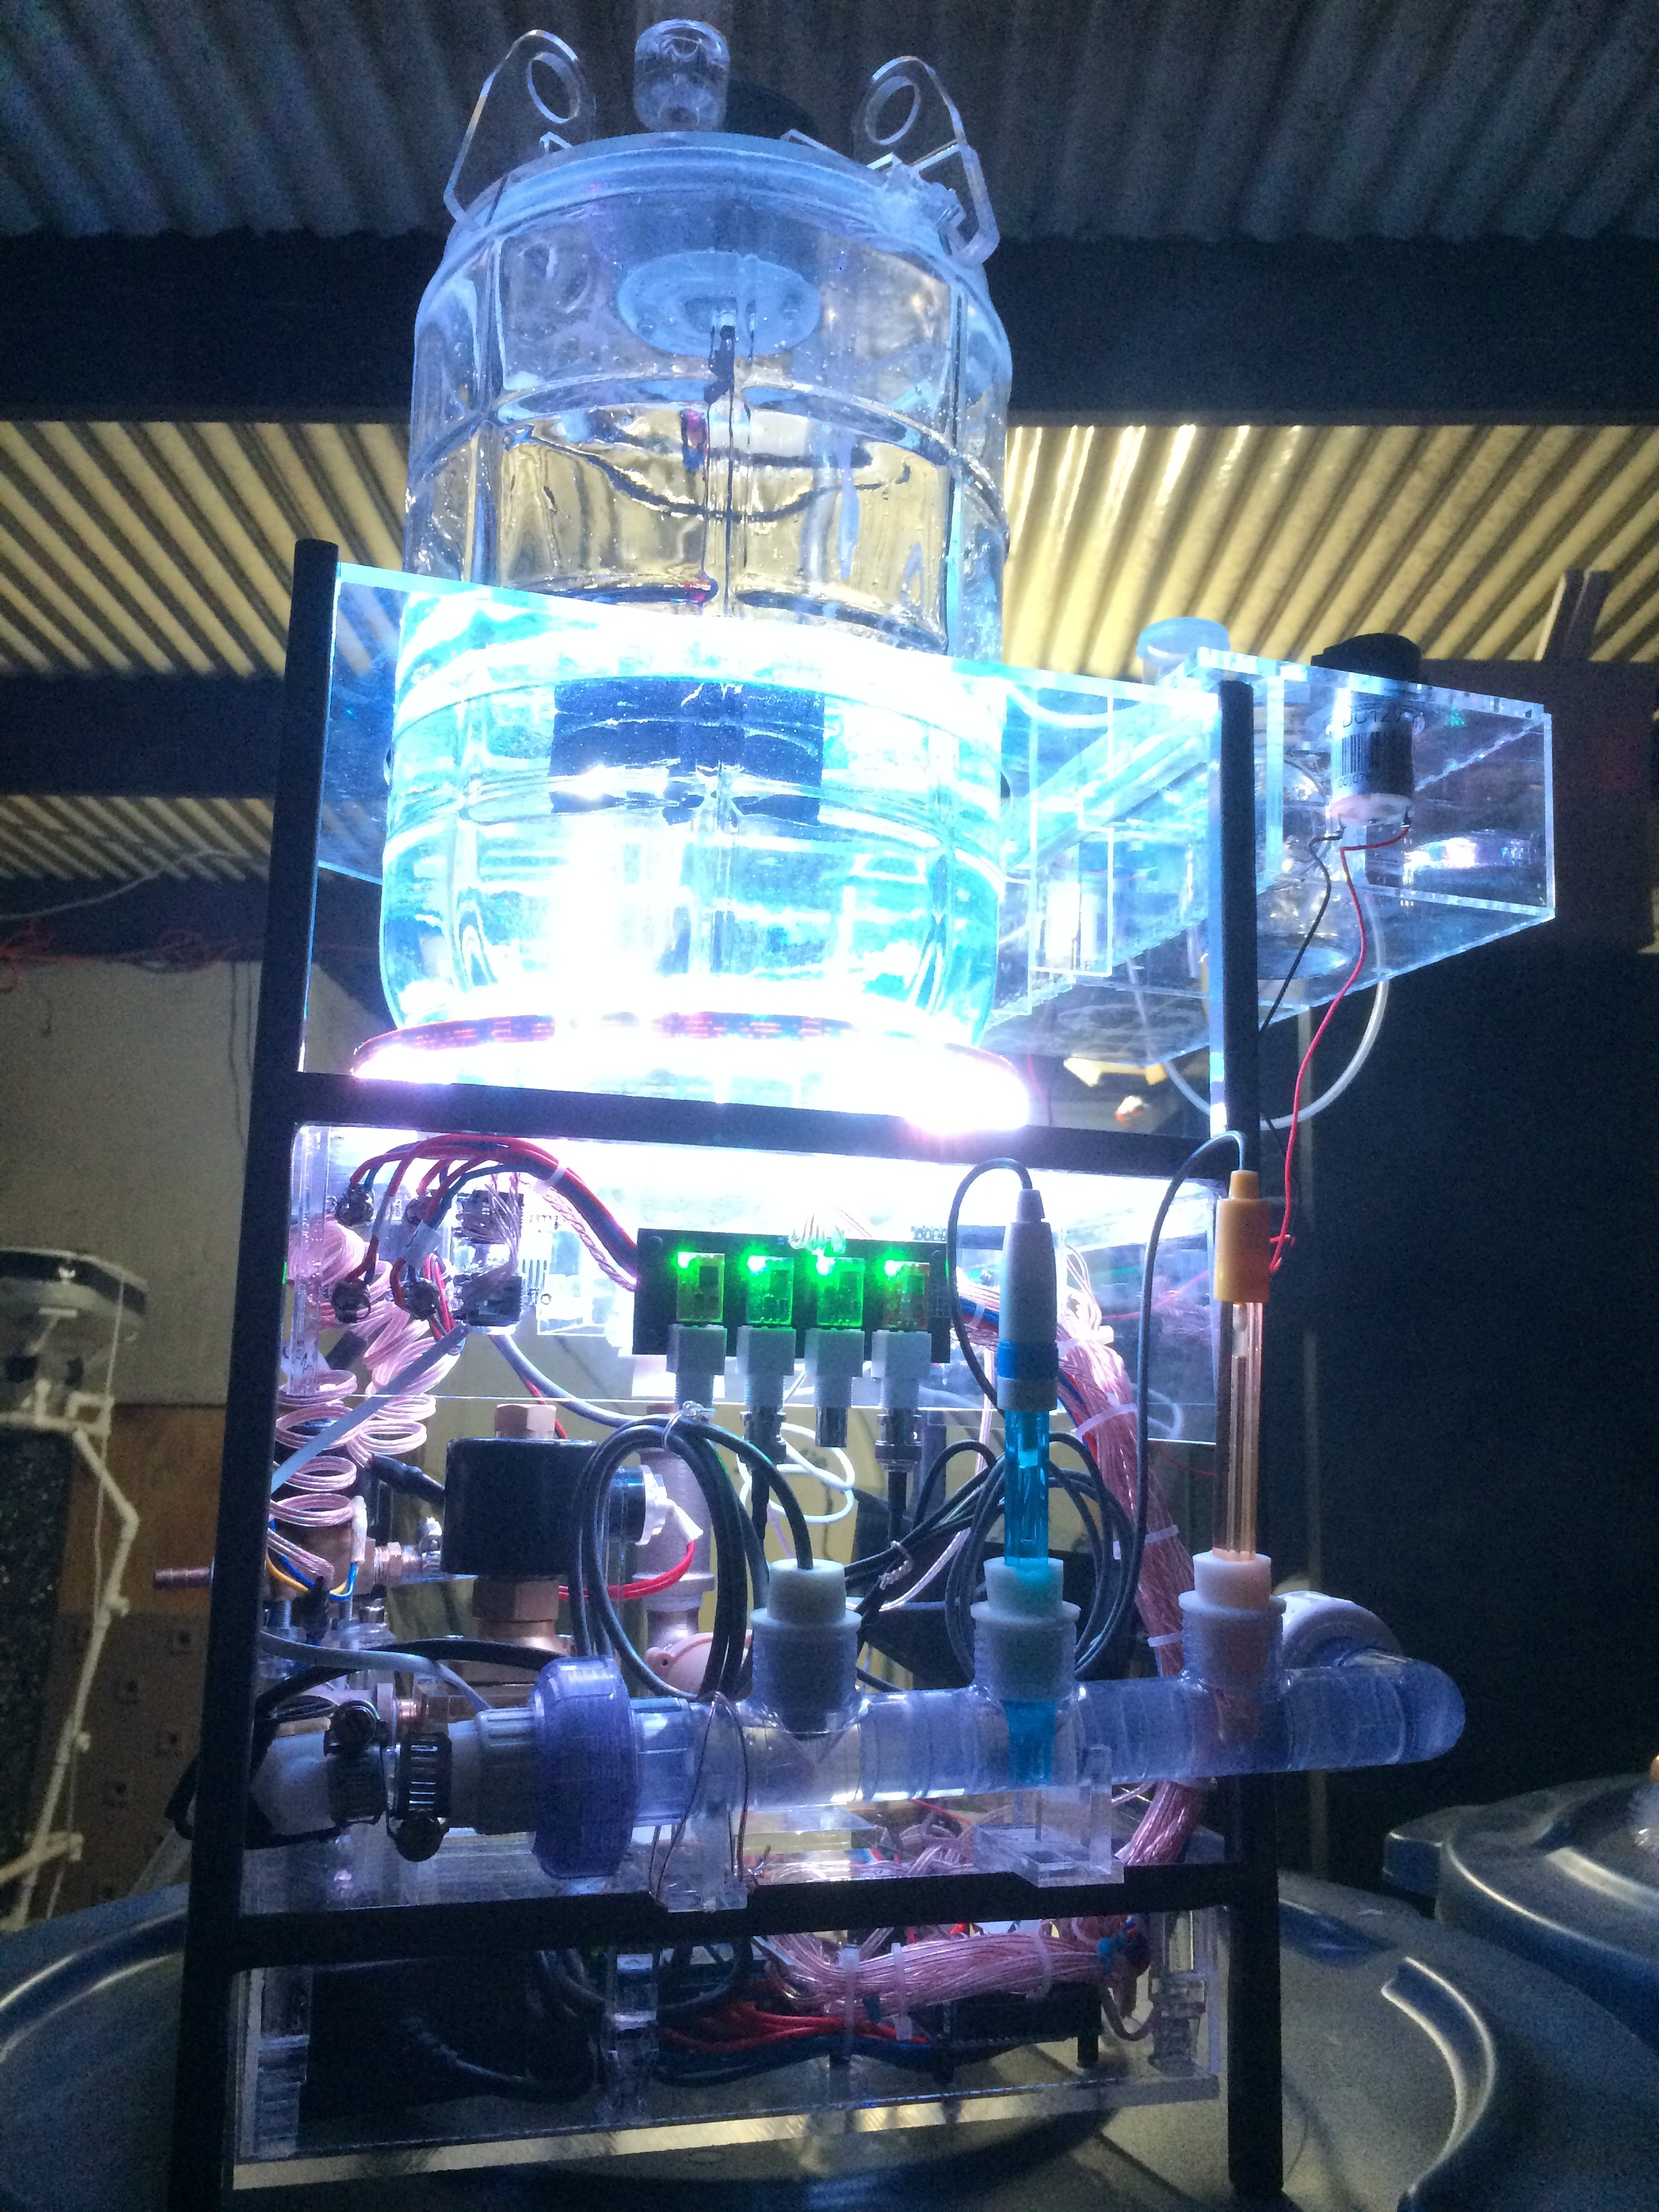 The end result of a few intense weeks of fabrication was a machine which could continuously 'brew' a liquid culture of aerobic or anaerobic bacteria and/or fungi (automated kombucha machine, anyone?) with solid/liquid inputs & liquid output dispensing being  mechanically regulated , agitation (spin mixing), color-based indicator lights, and aqueous chemistry monitoring (pH, EC, DO, temperature, etc.).